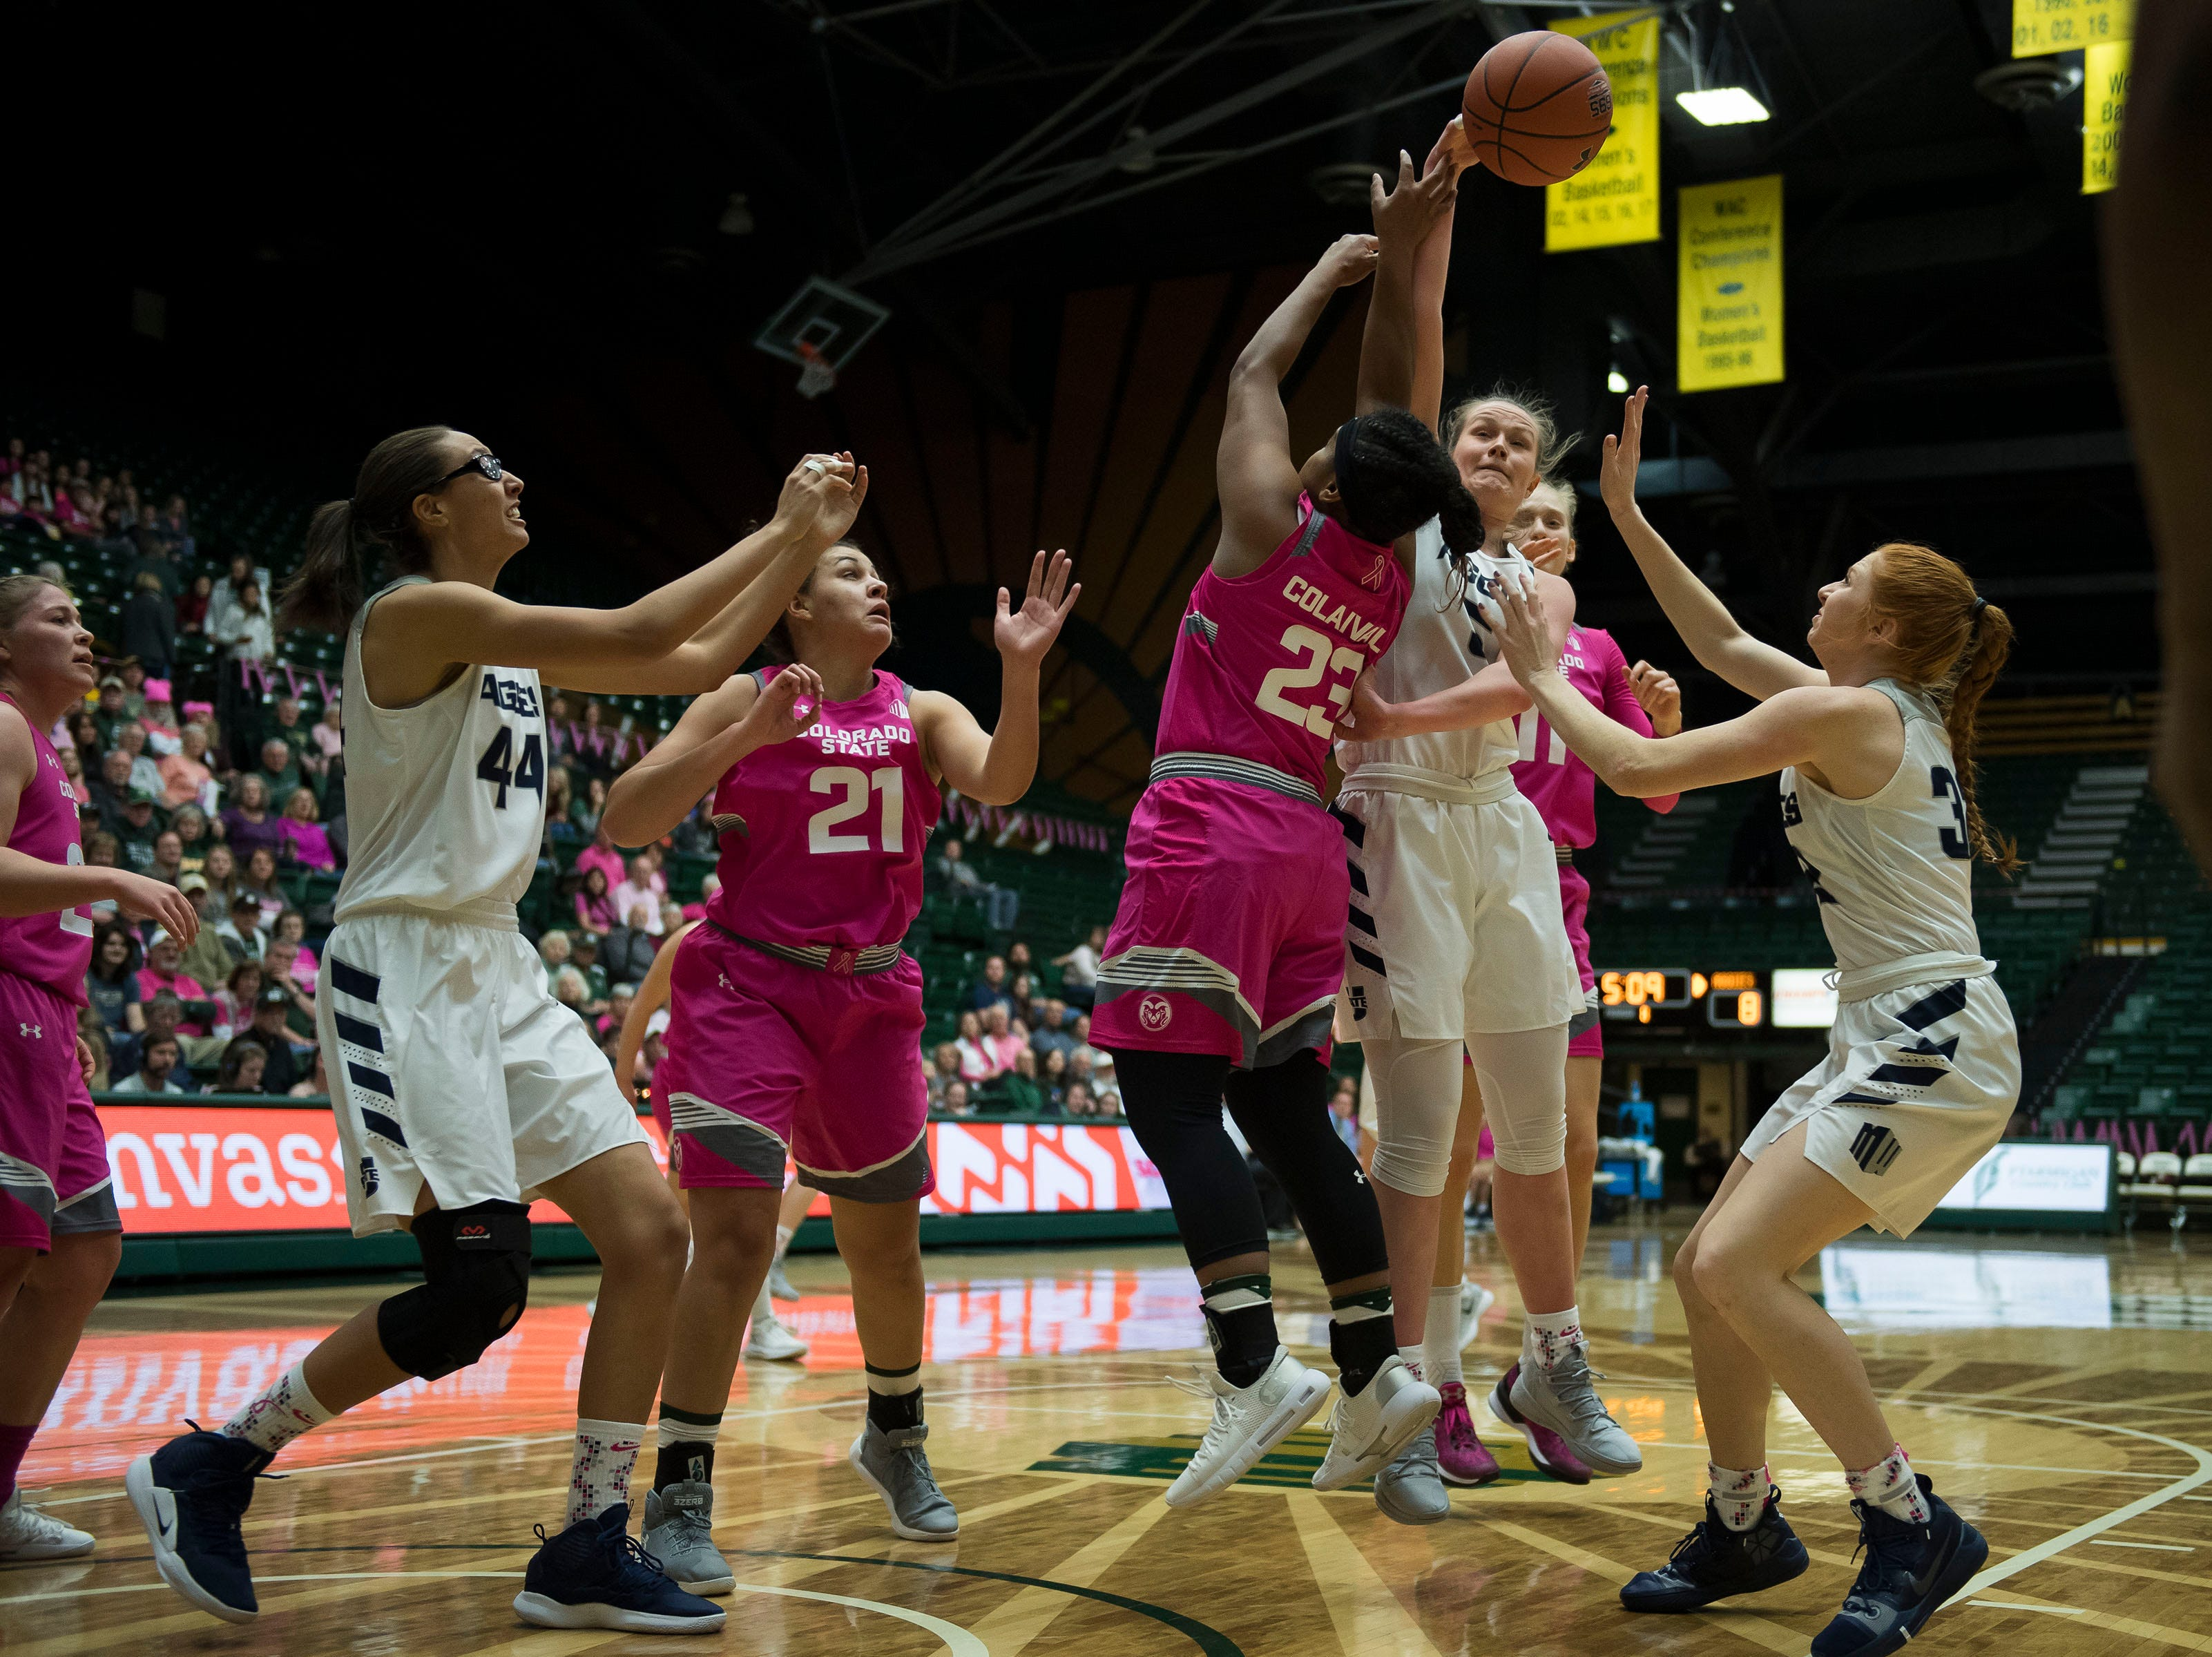 Utah State junior forward Shannon Dufficy (5) knocks down a rebound during a game against Colorado State University on Saturday, Jan. 19, 2019, at Moby Arena in Fort Collins, Colo.